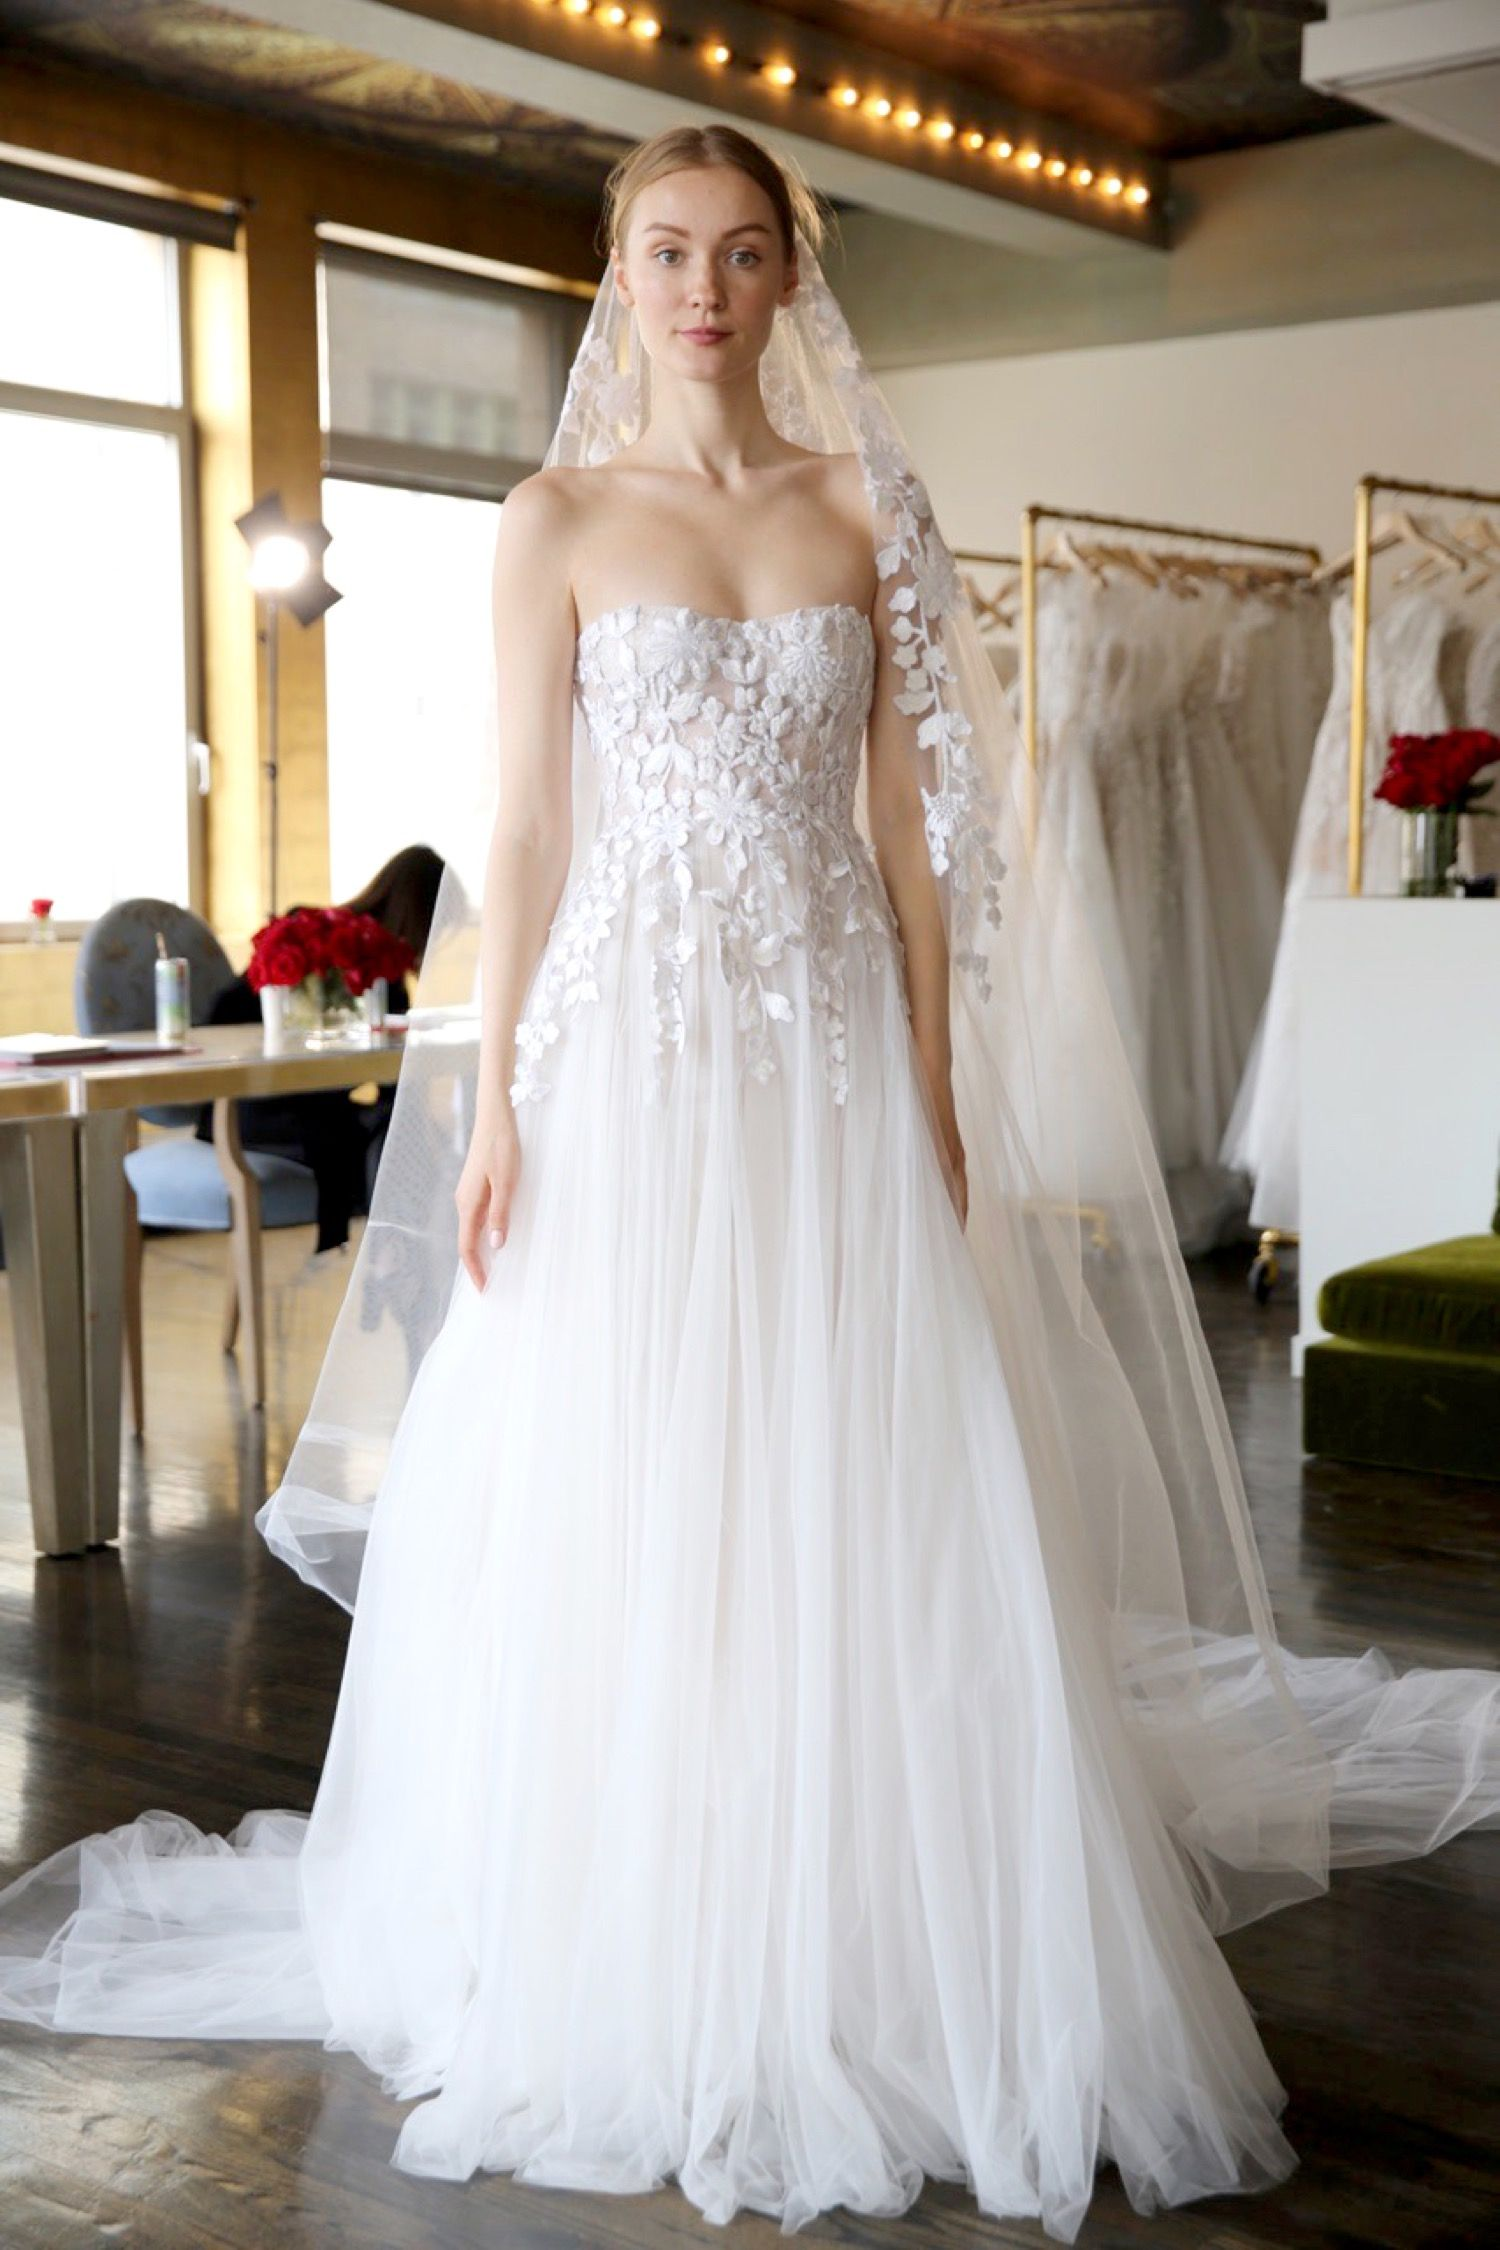 Reem Acra Weour Latest Gowns From Reem Acra Bridal Spring 2020 Collection Arrived Just In Time For Bri In 2020 Reem Acra Bridal Ruffle Wedding Dress Ball Gowns Wedding